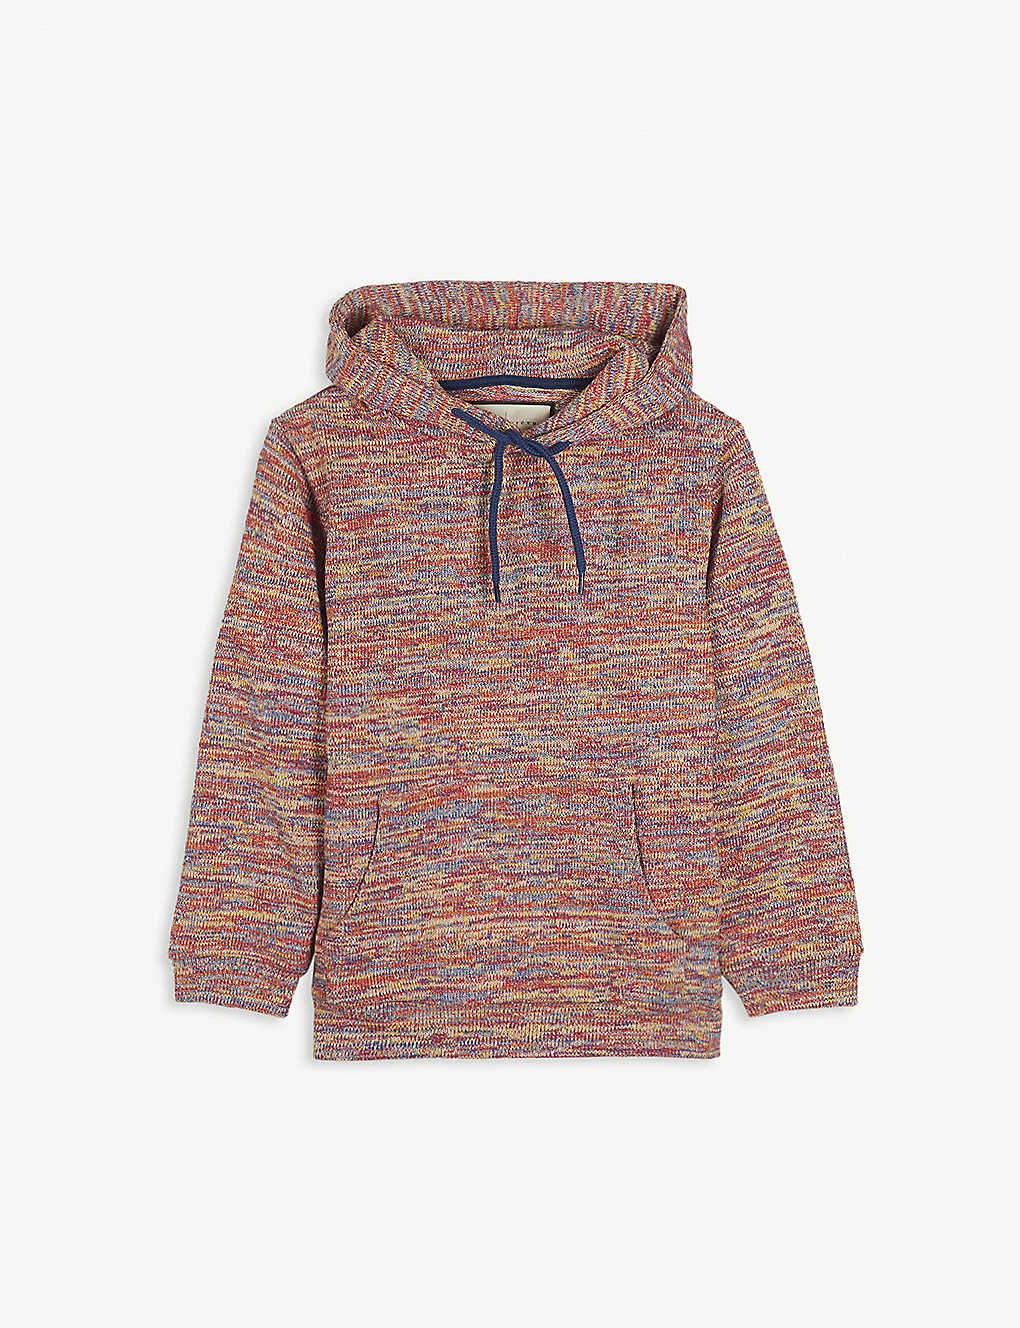 PREVU: Woven Karaman cotton hoody 4-14 years